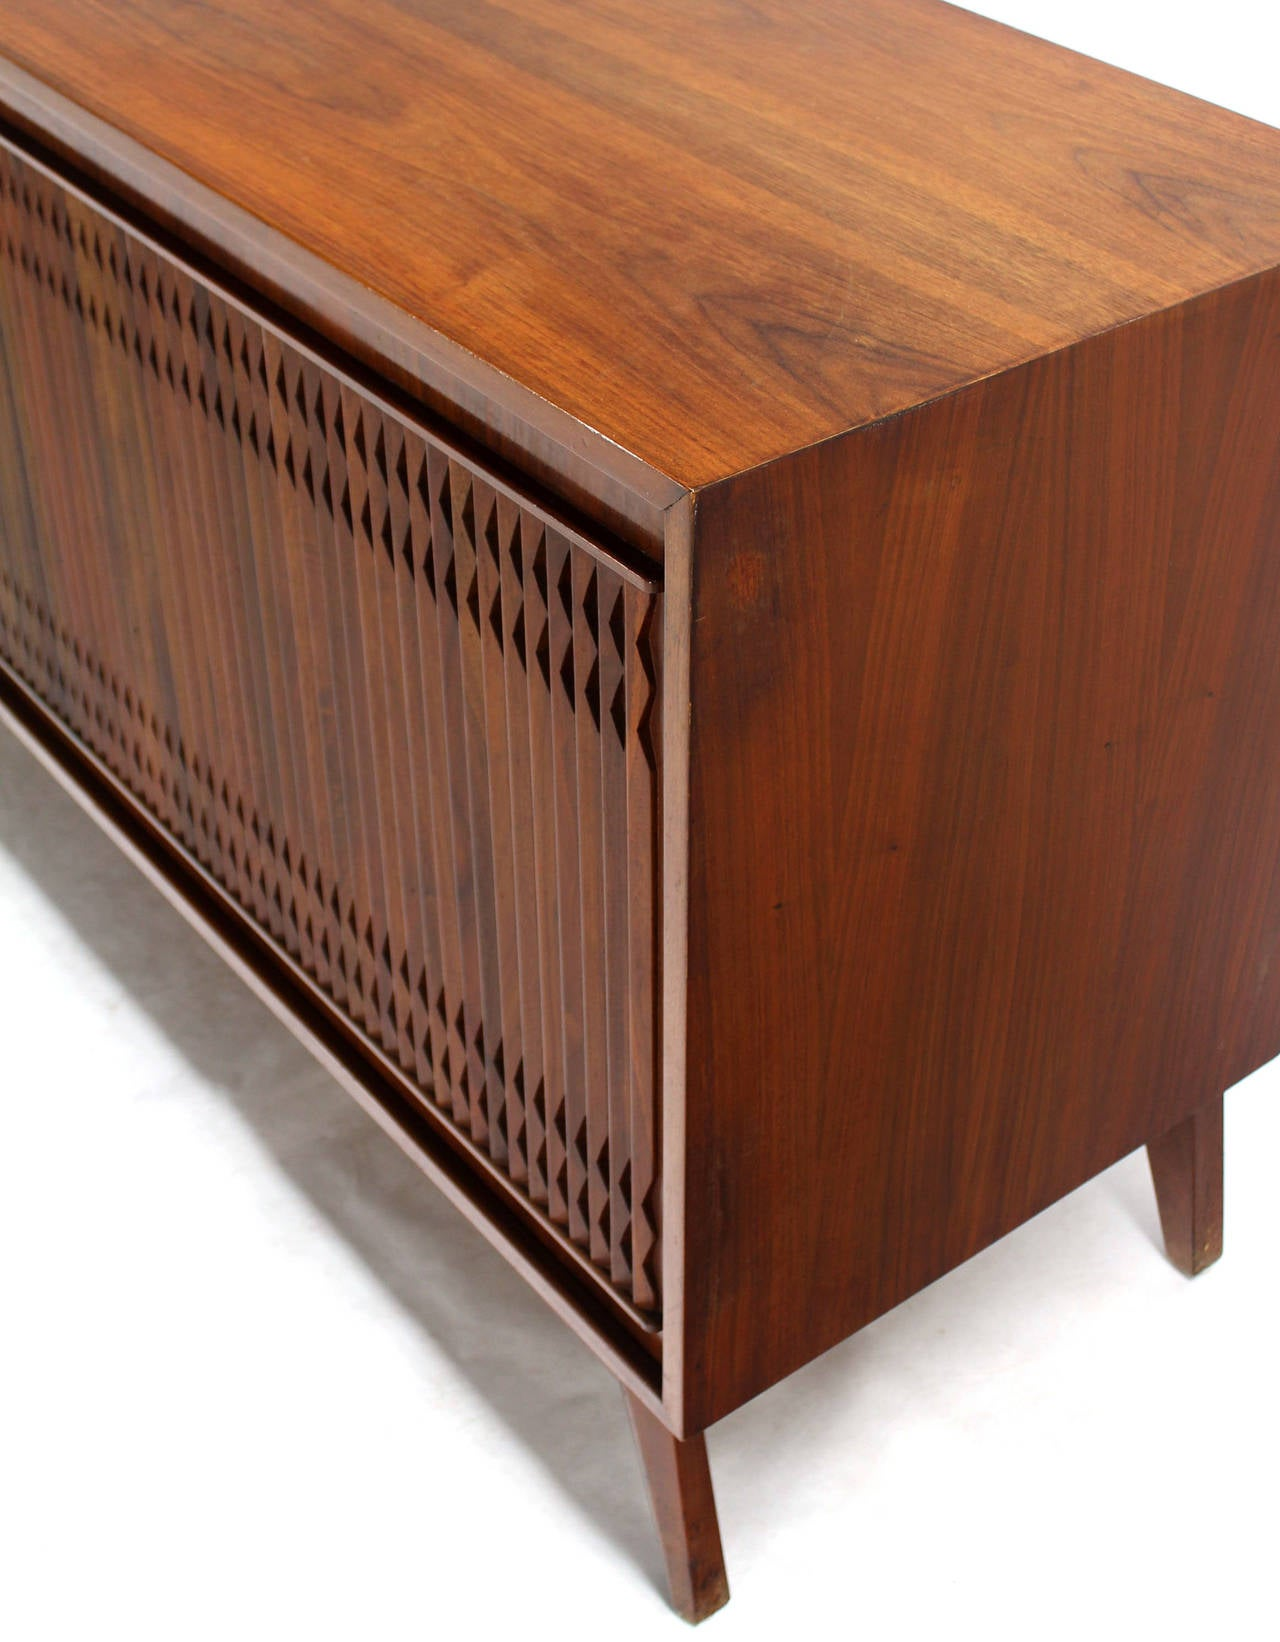 Lacquered Danish Mid Century Modern Walnut Long Credenza Dresser with Sliding Door For Sale